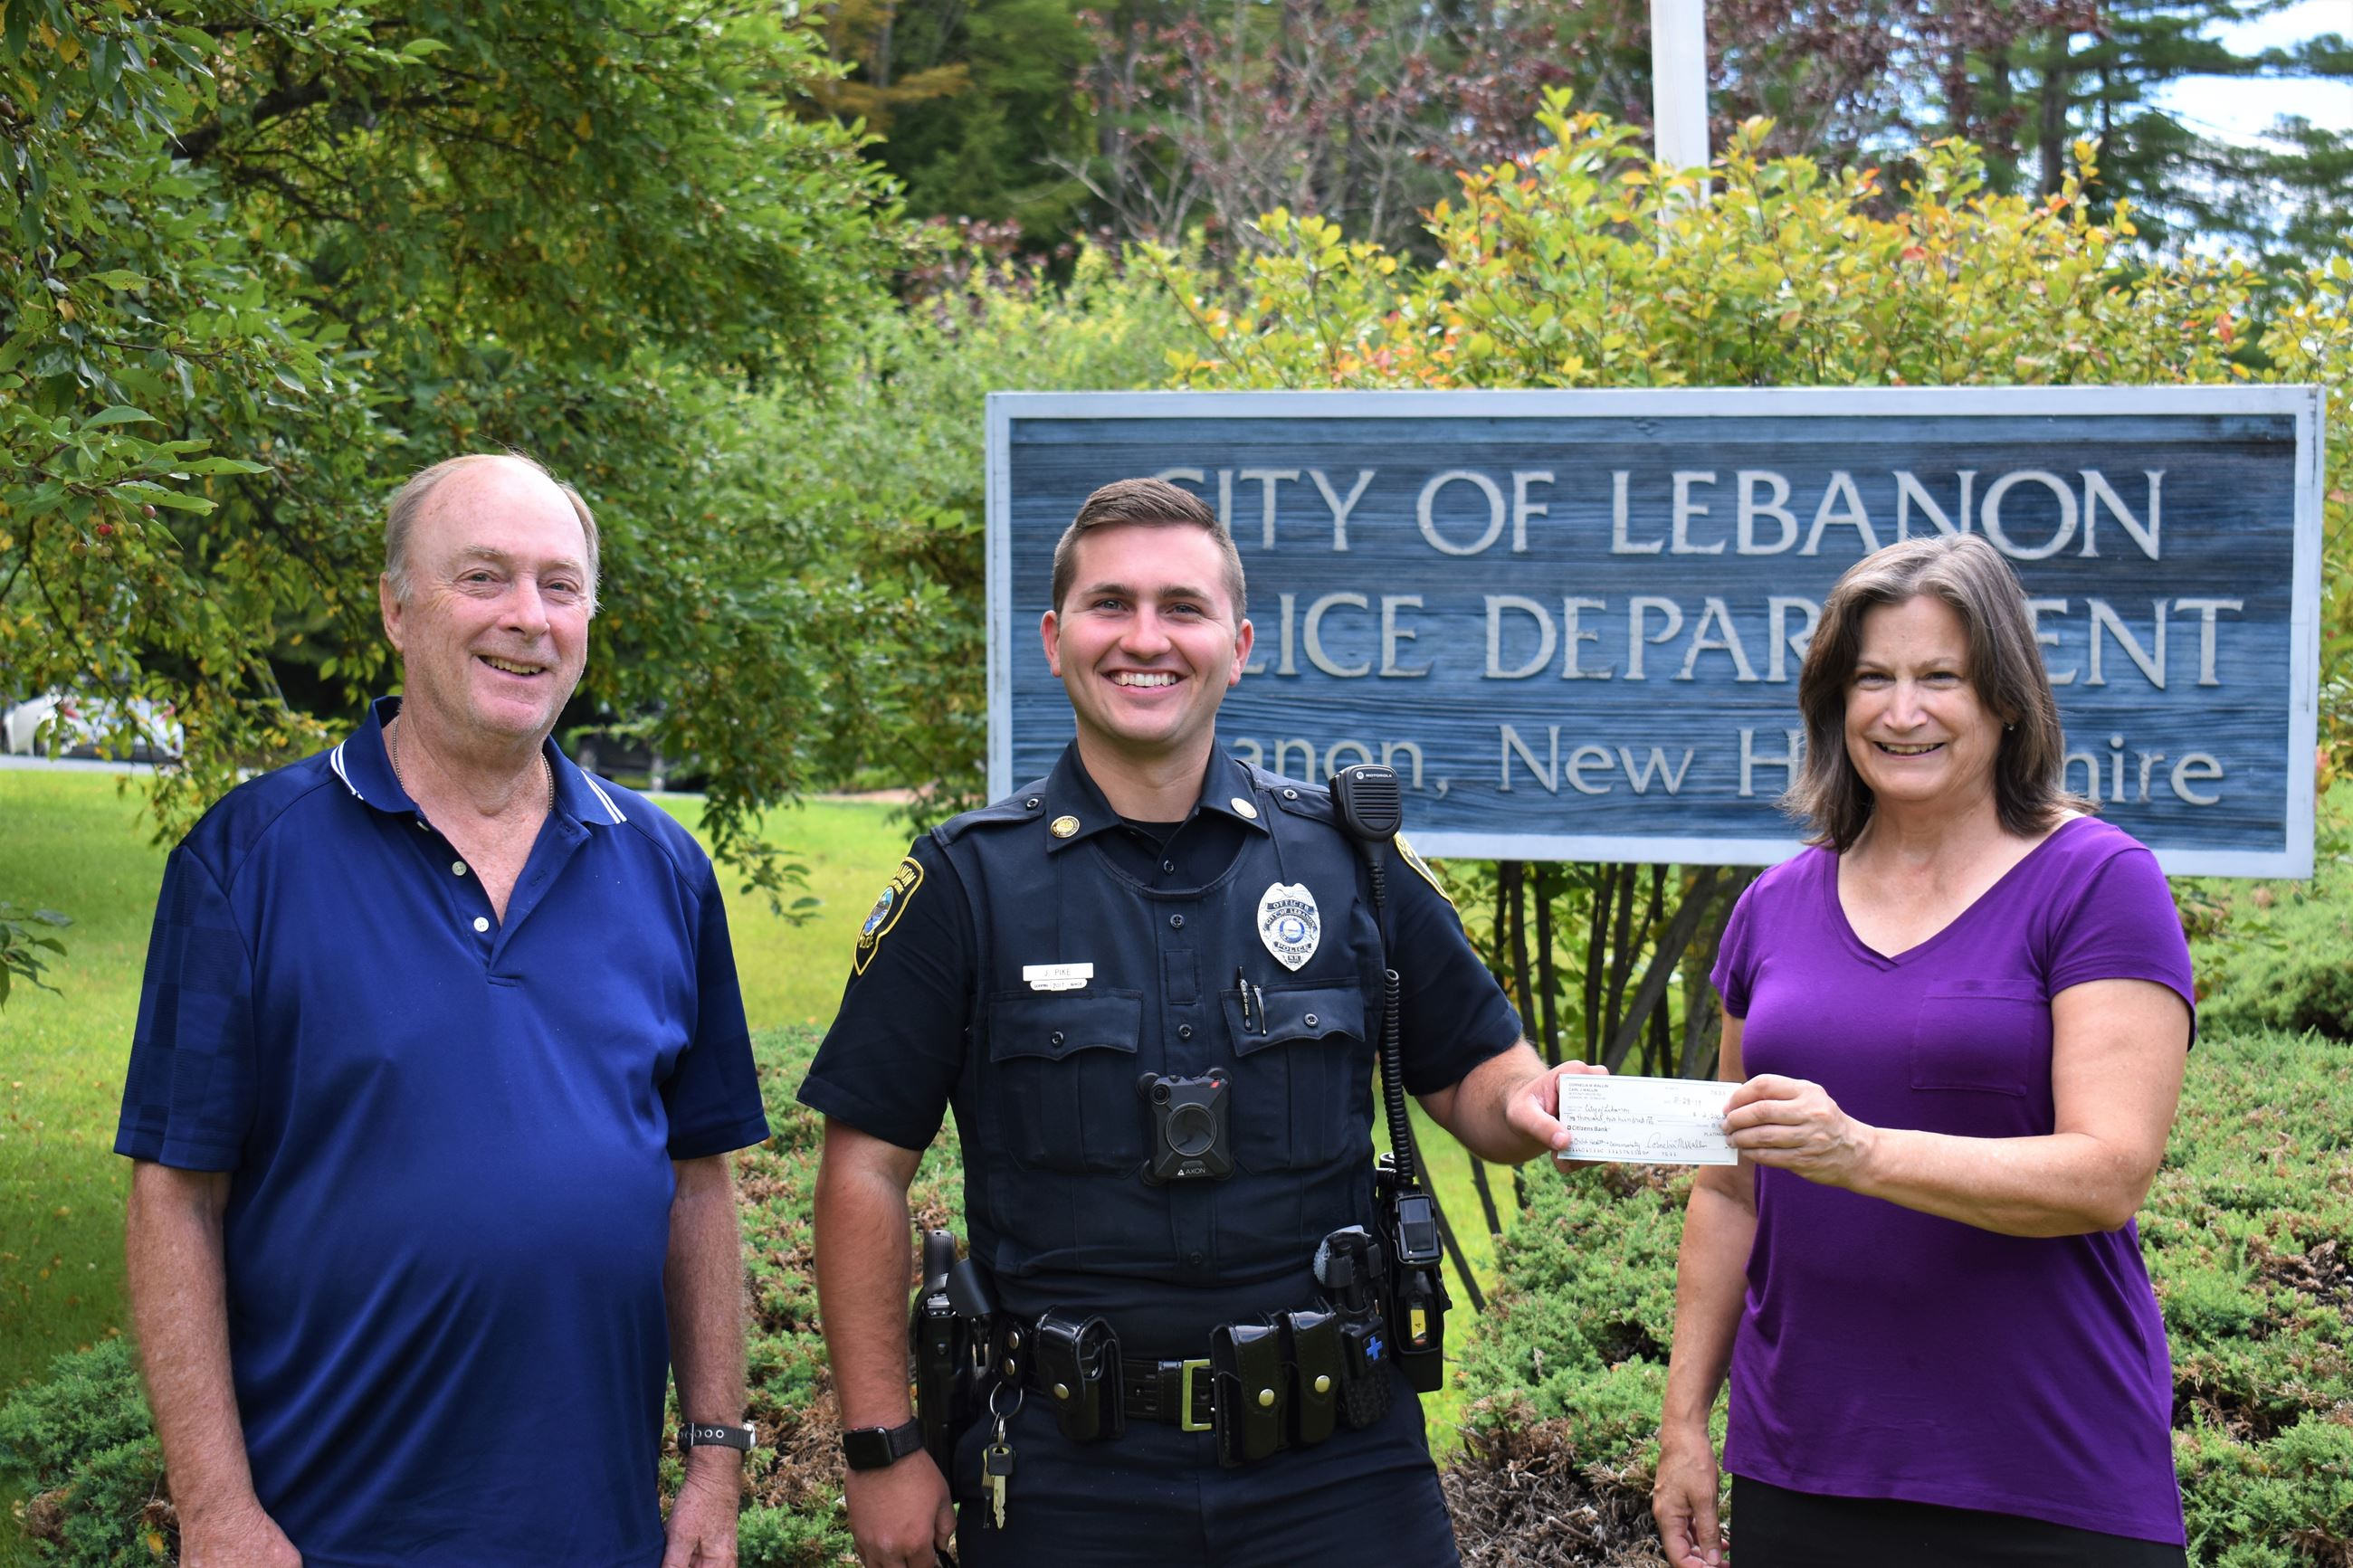 Officer Pike Accepting Thor's Stone Fundraiser Donation